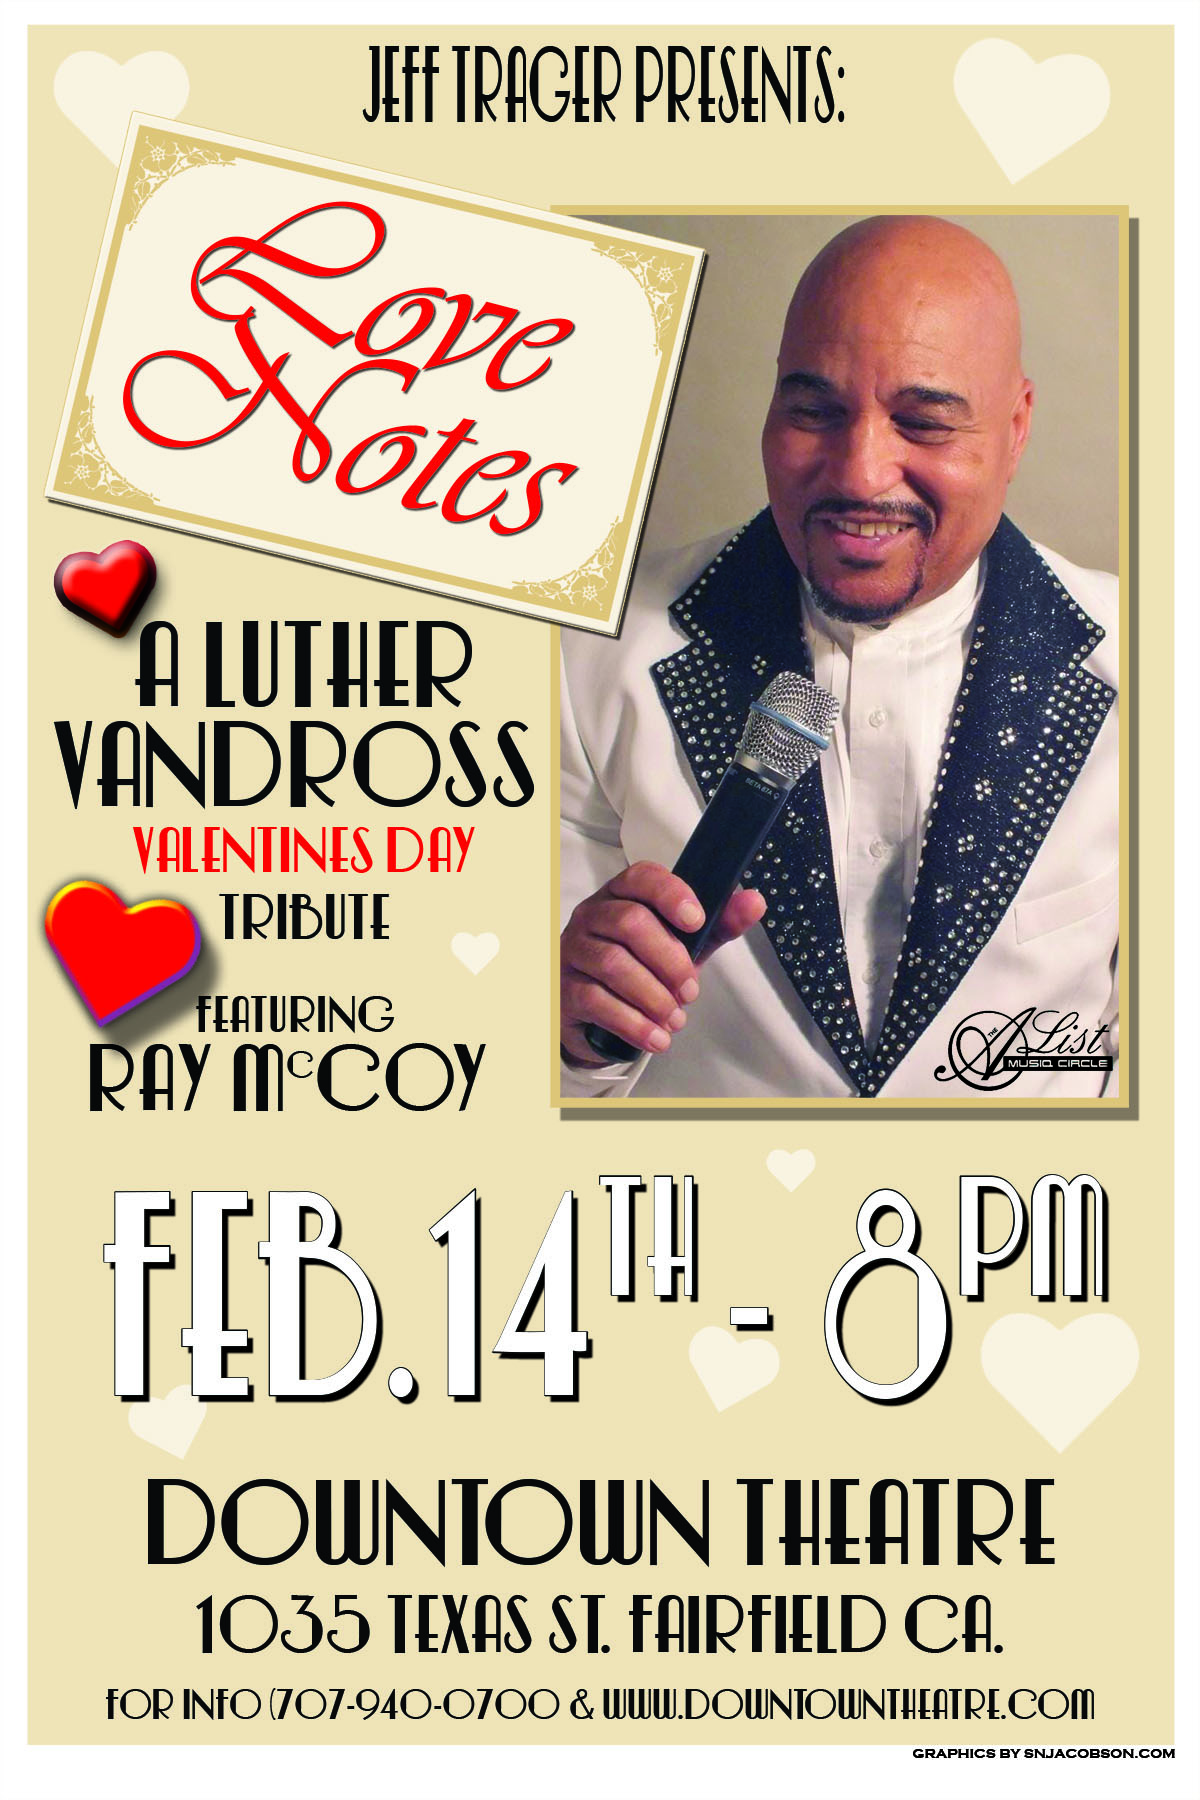 jeff-trager-presents-luther-vandross-valentines-day-tribute